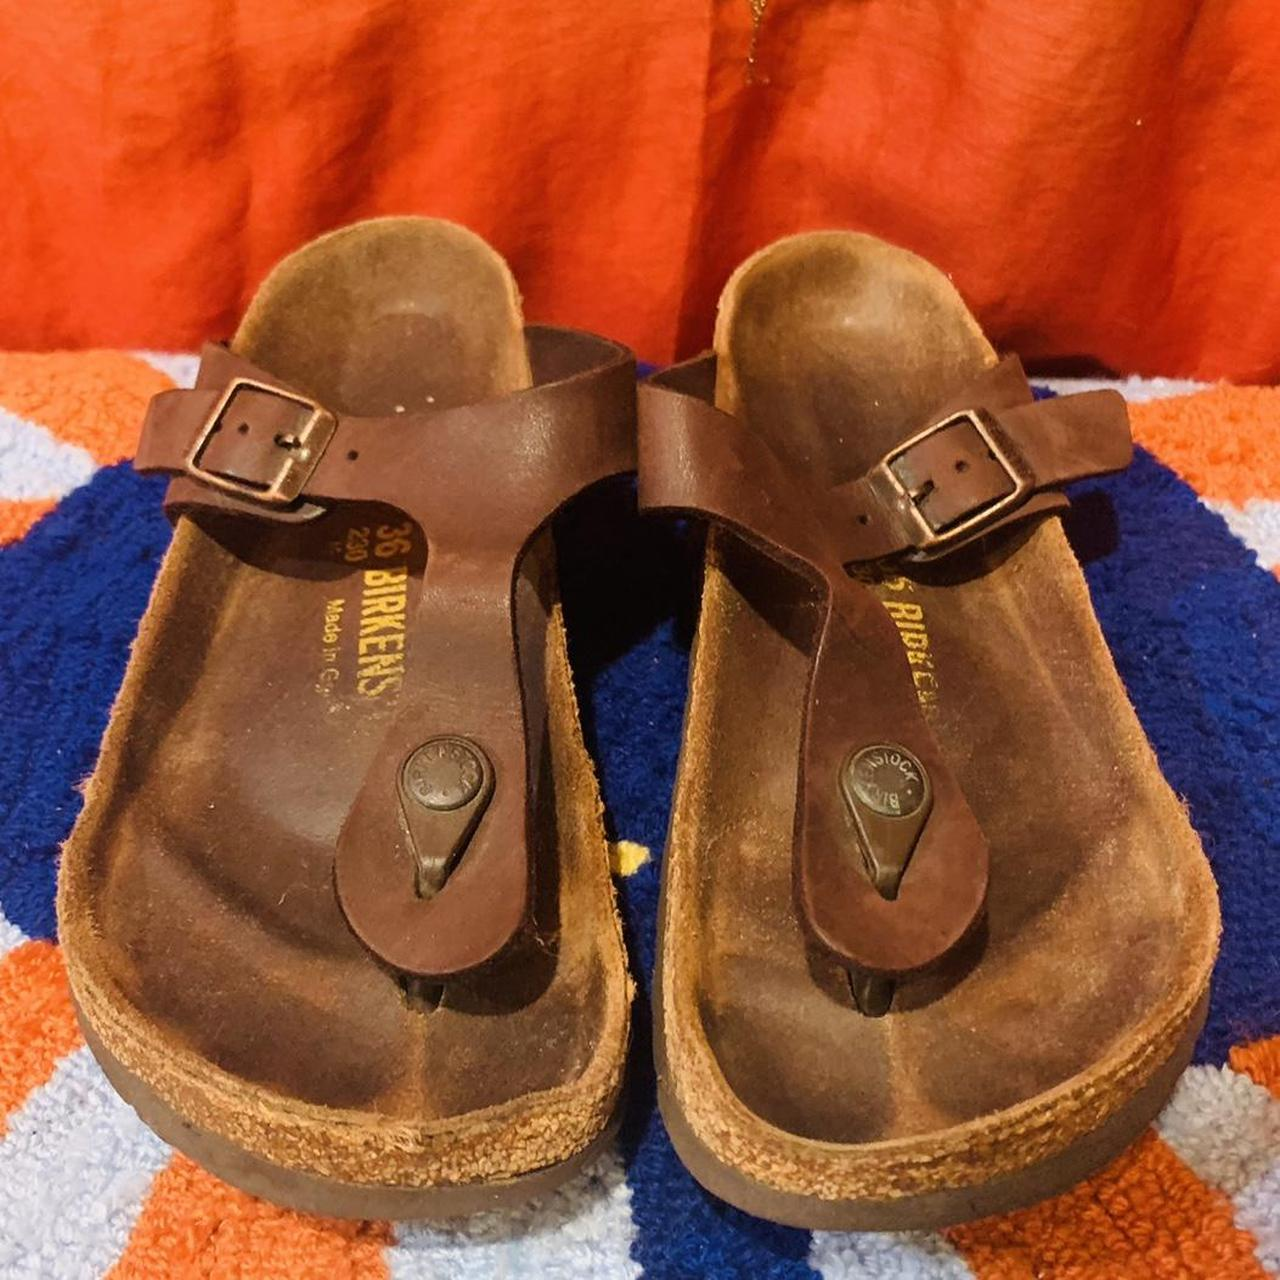 Product Image 1 - Brown Leather Birkenstock Sandals  Size: